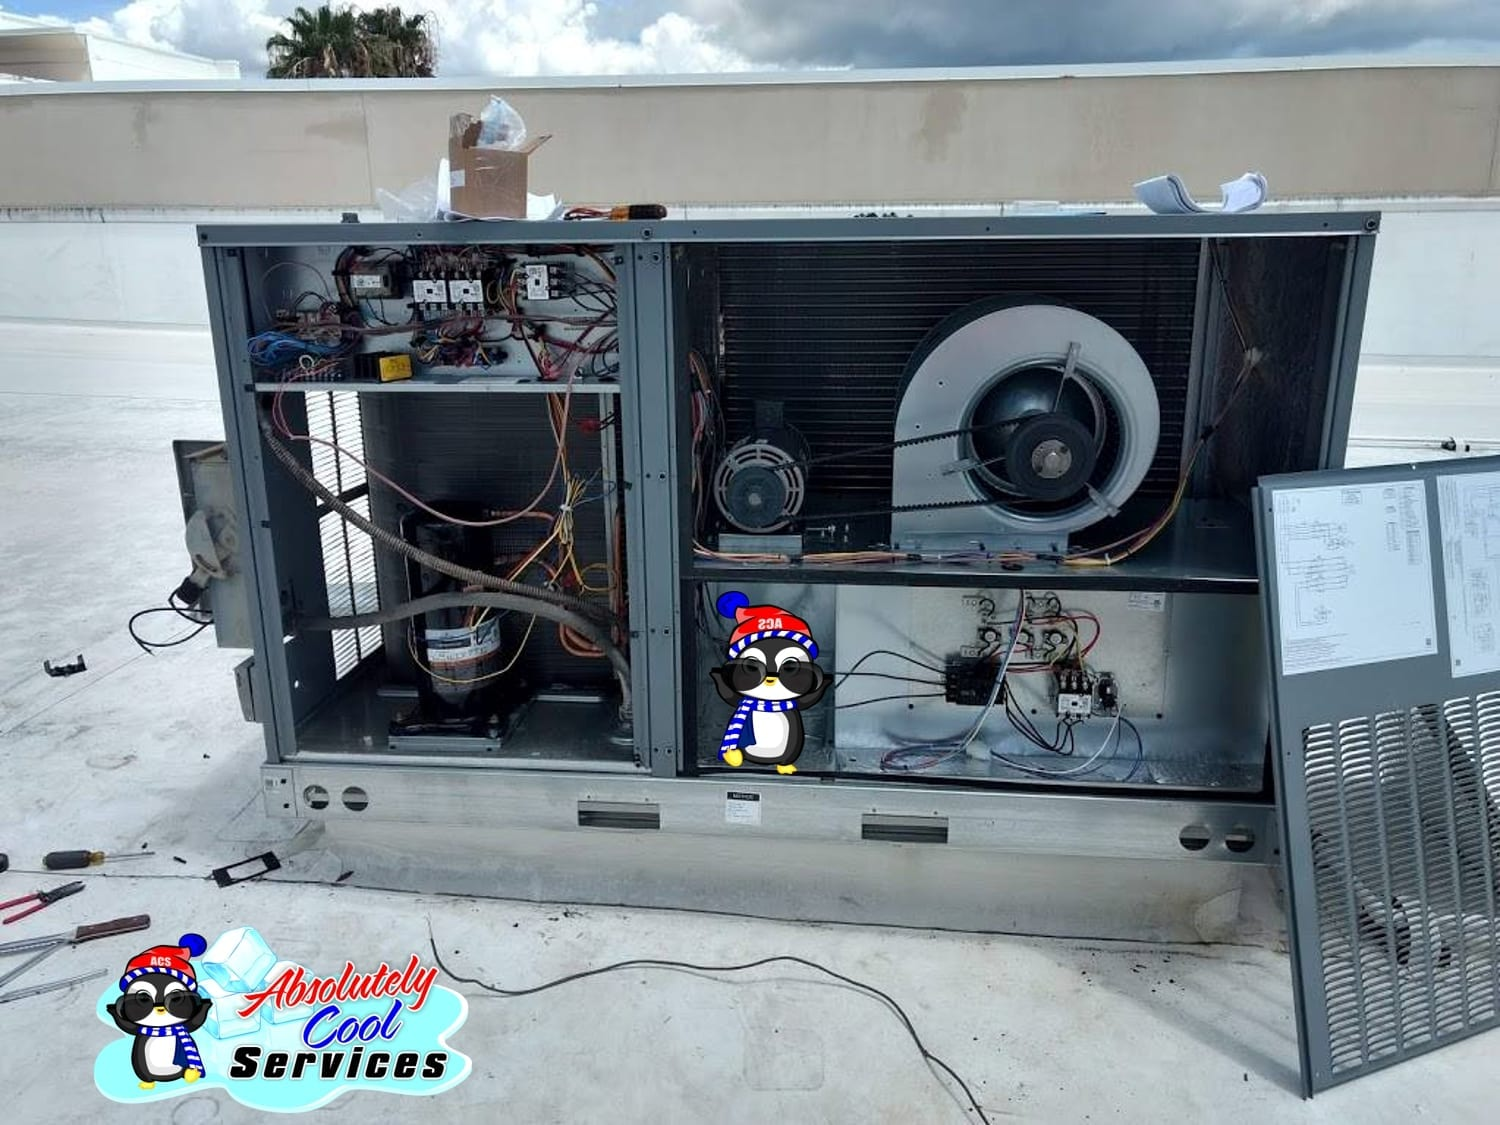 Roof Air Conditioning | HVAC Maintenance Service near Lake Worth